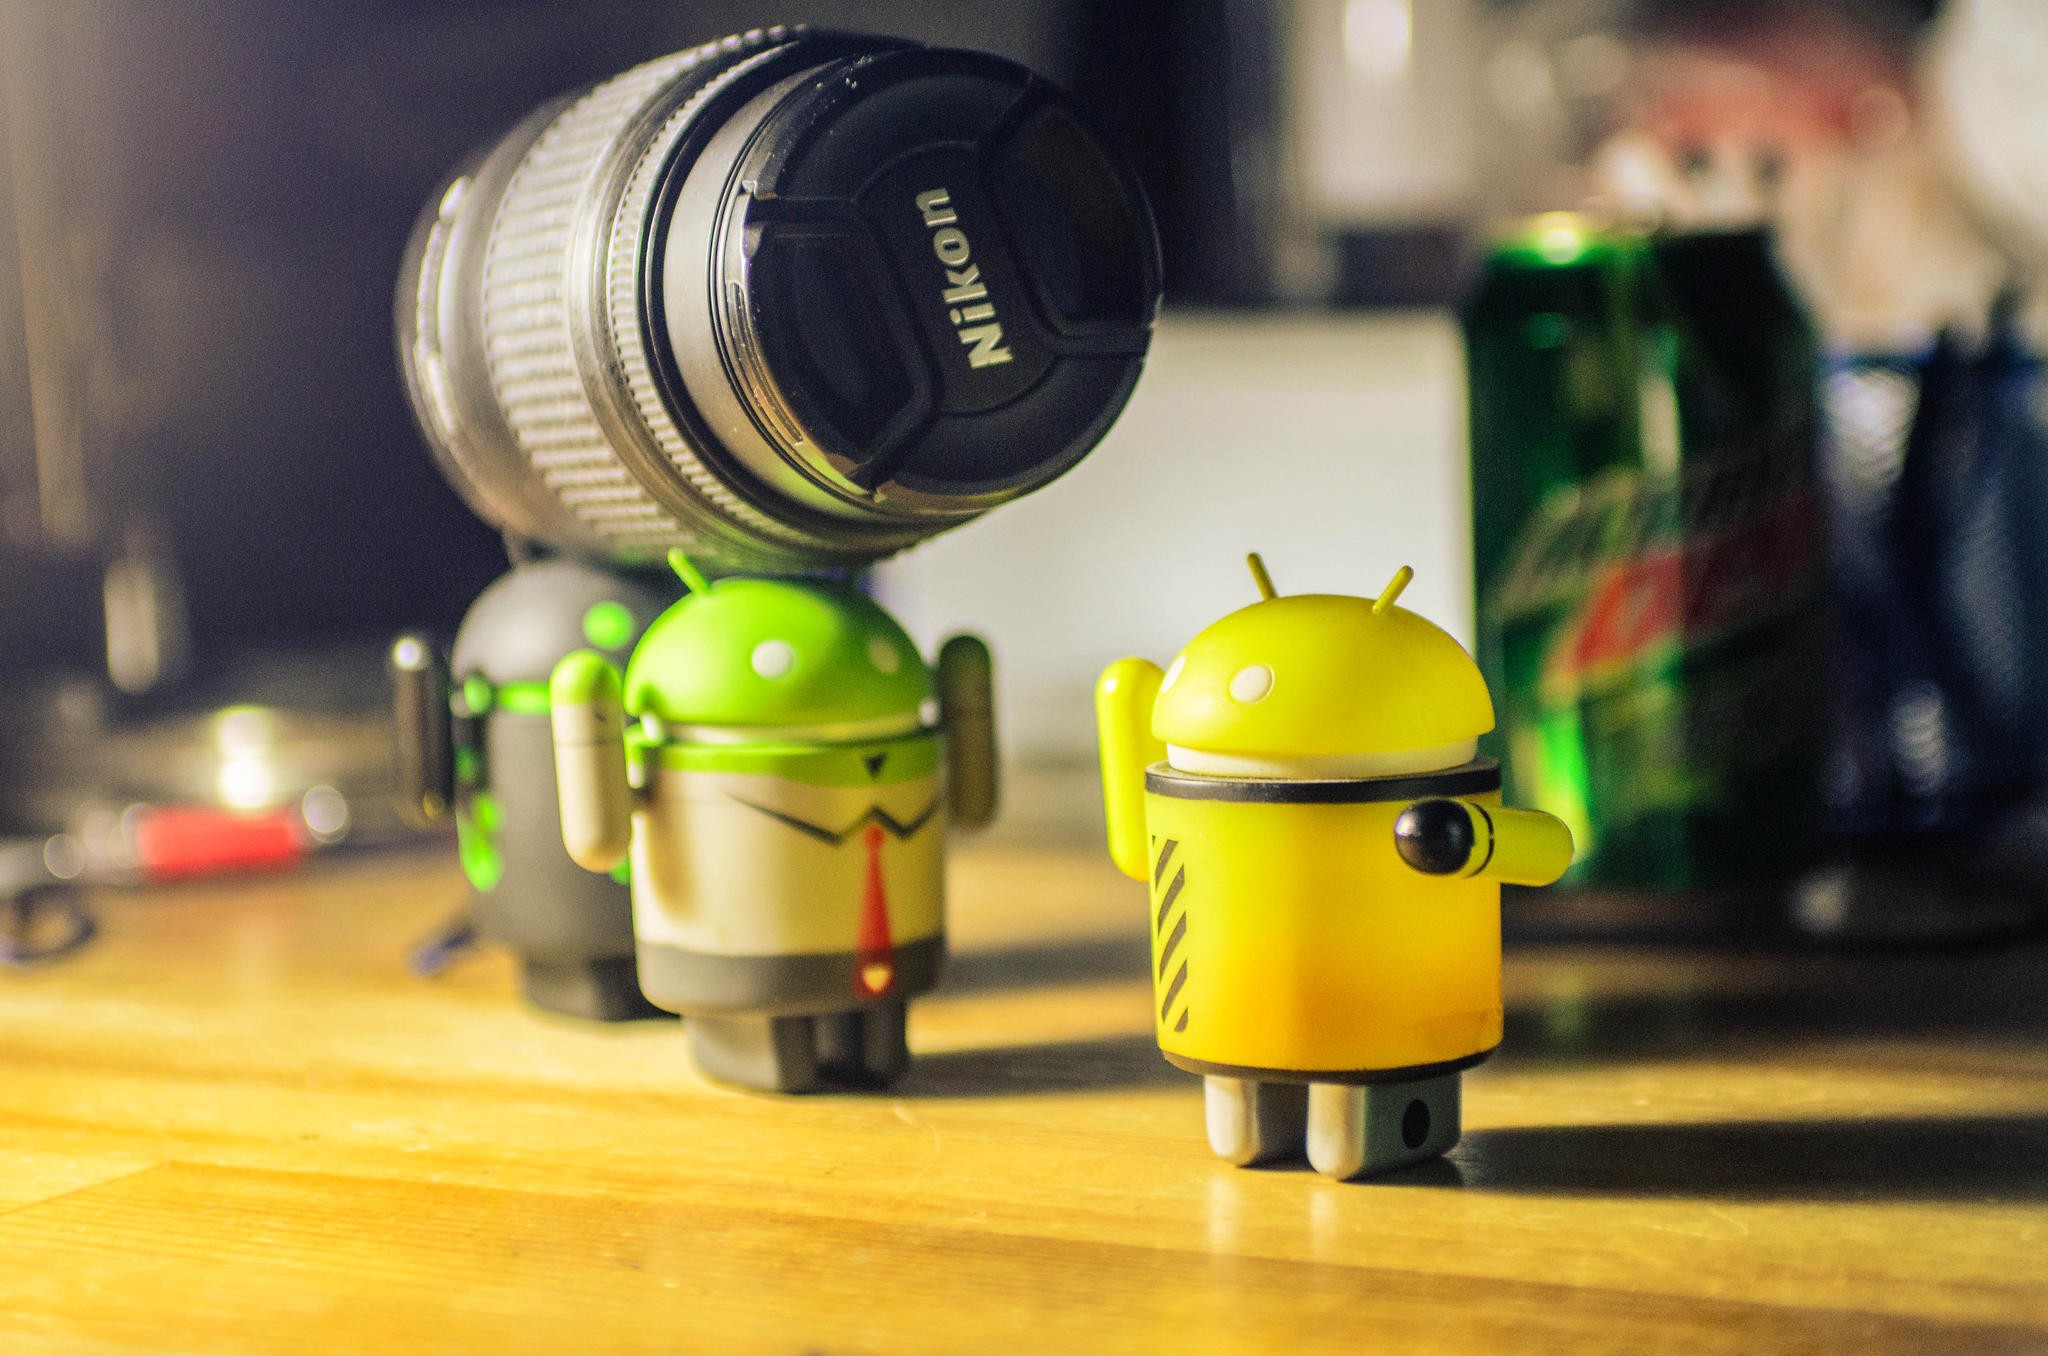 Android Image Loading from a String URL - Christopher Ross